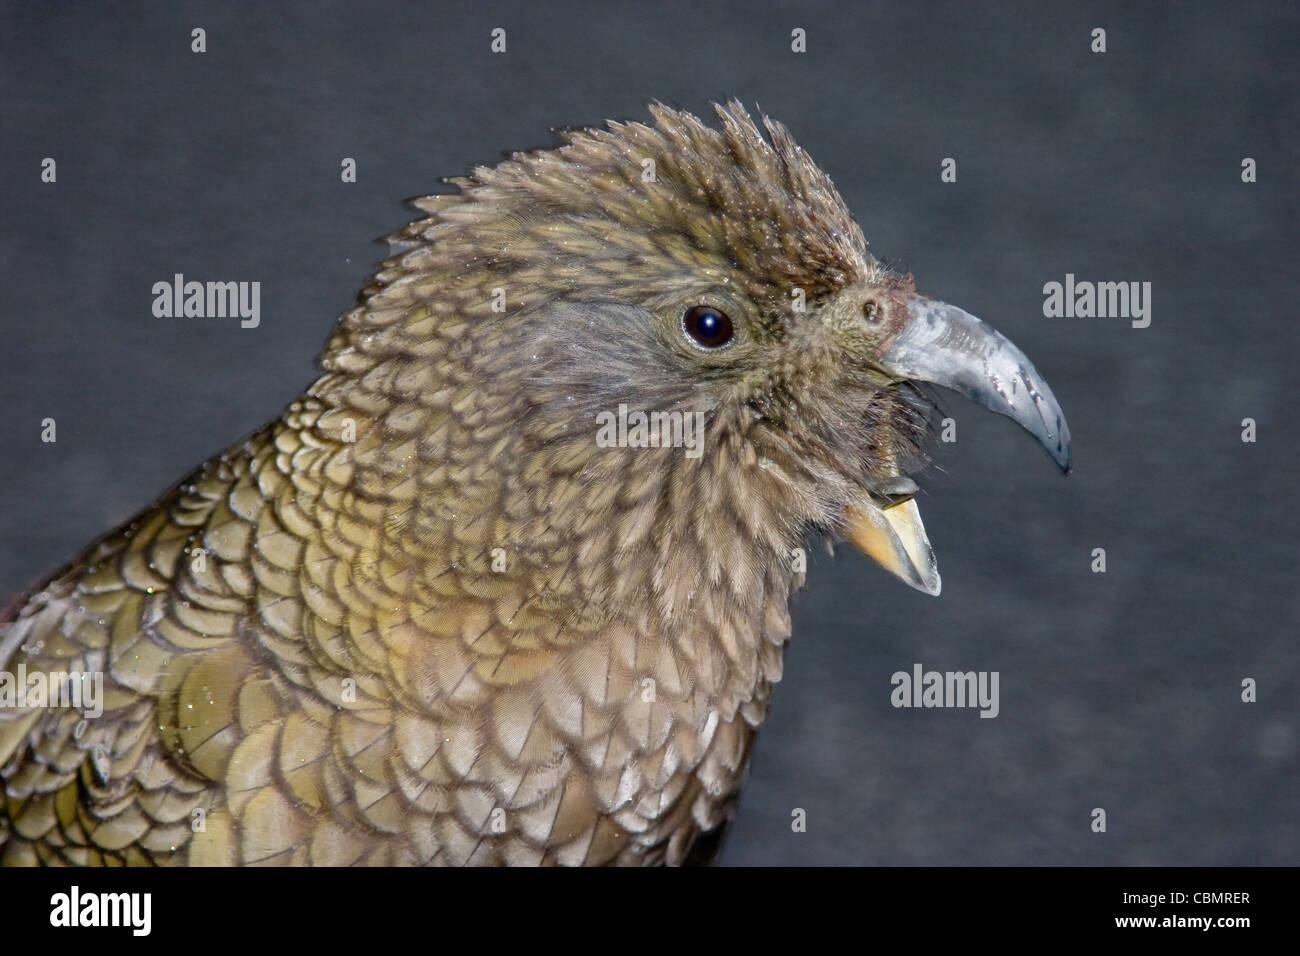 New Zealand kea mountain parrot closeup portrait with beak open Stock Photo